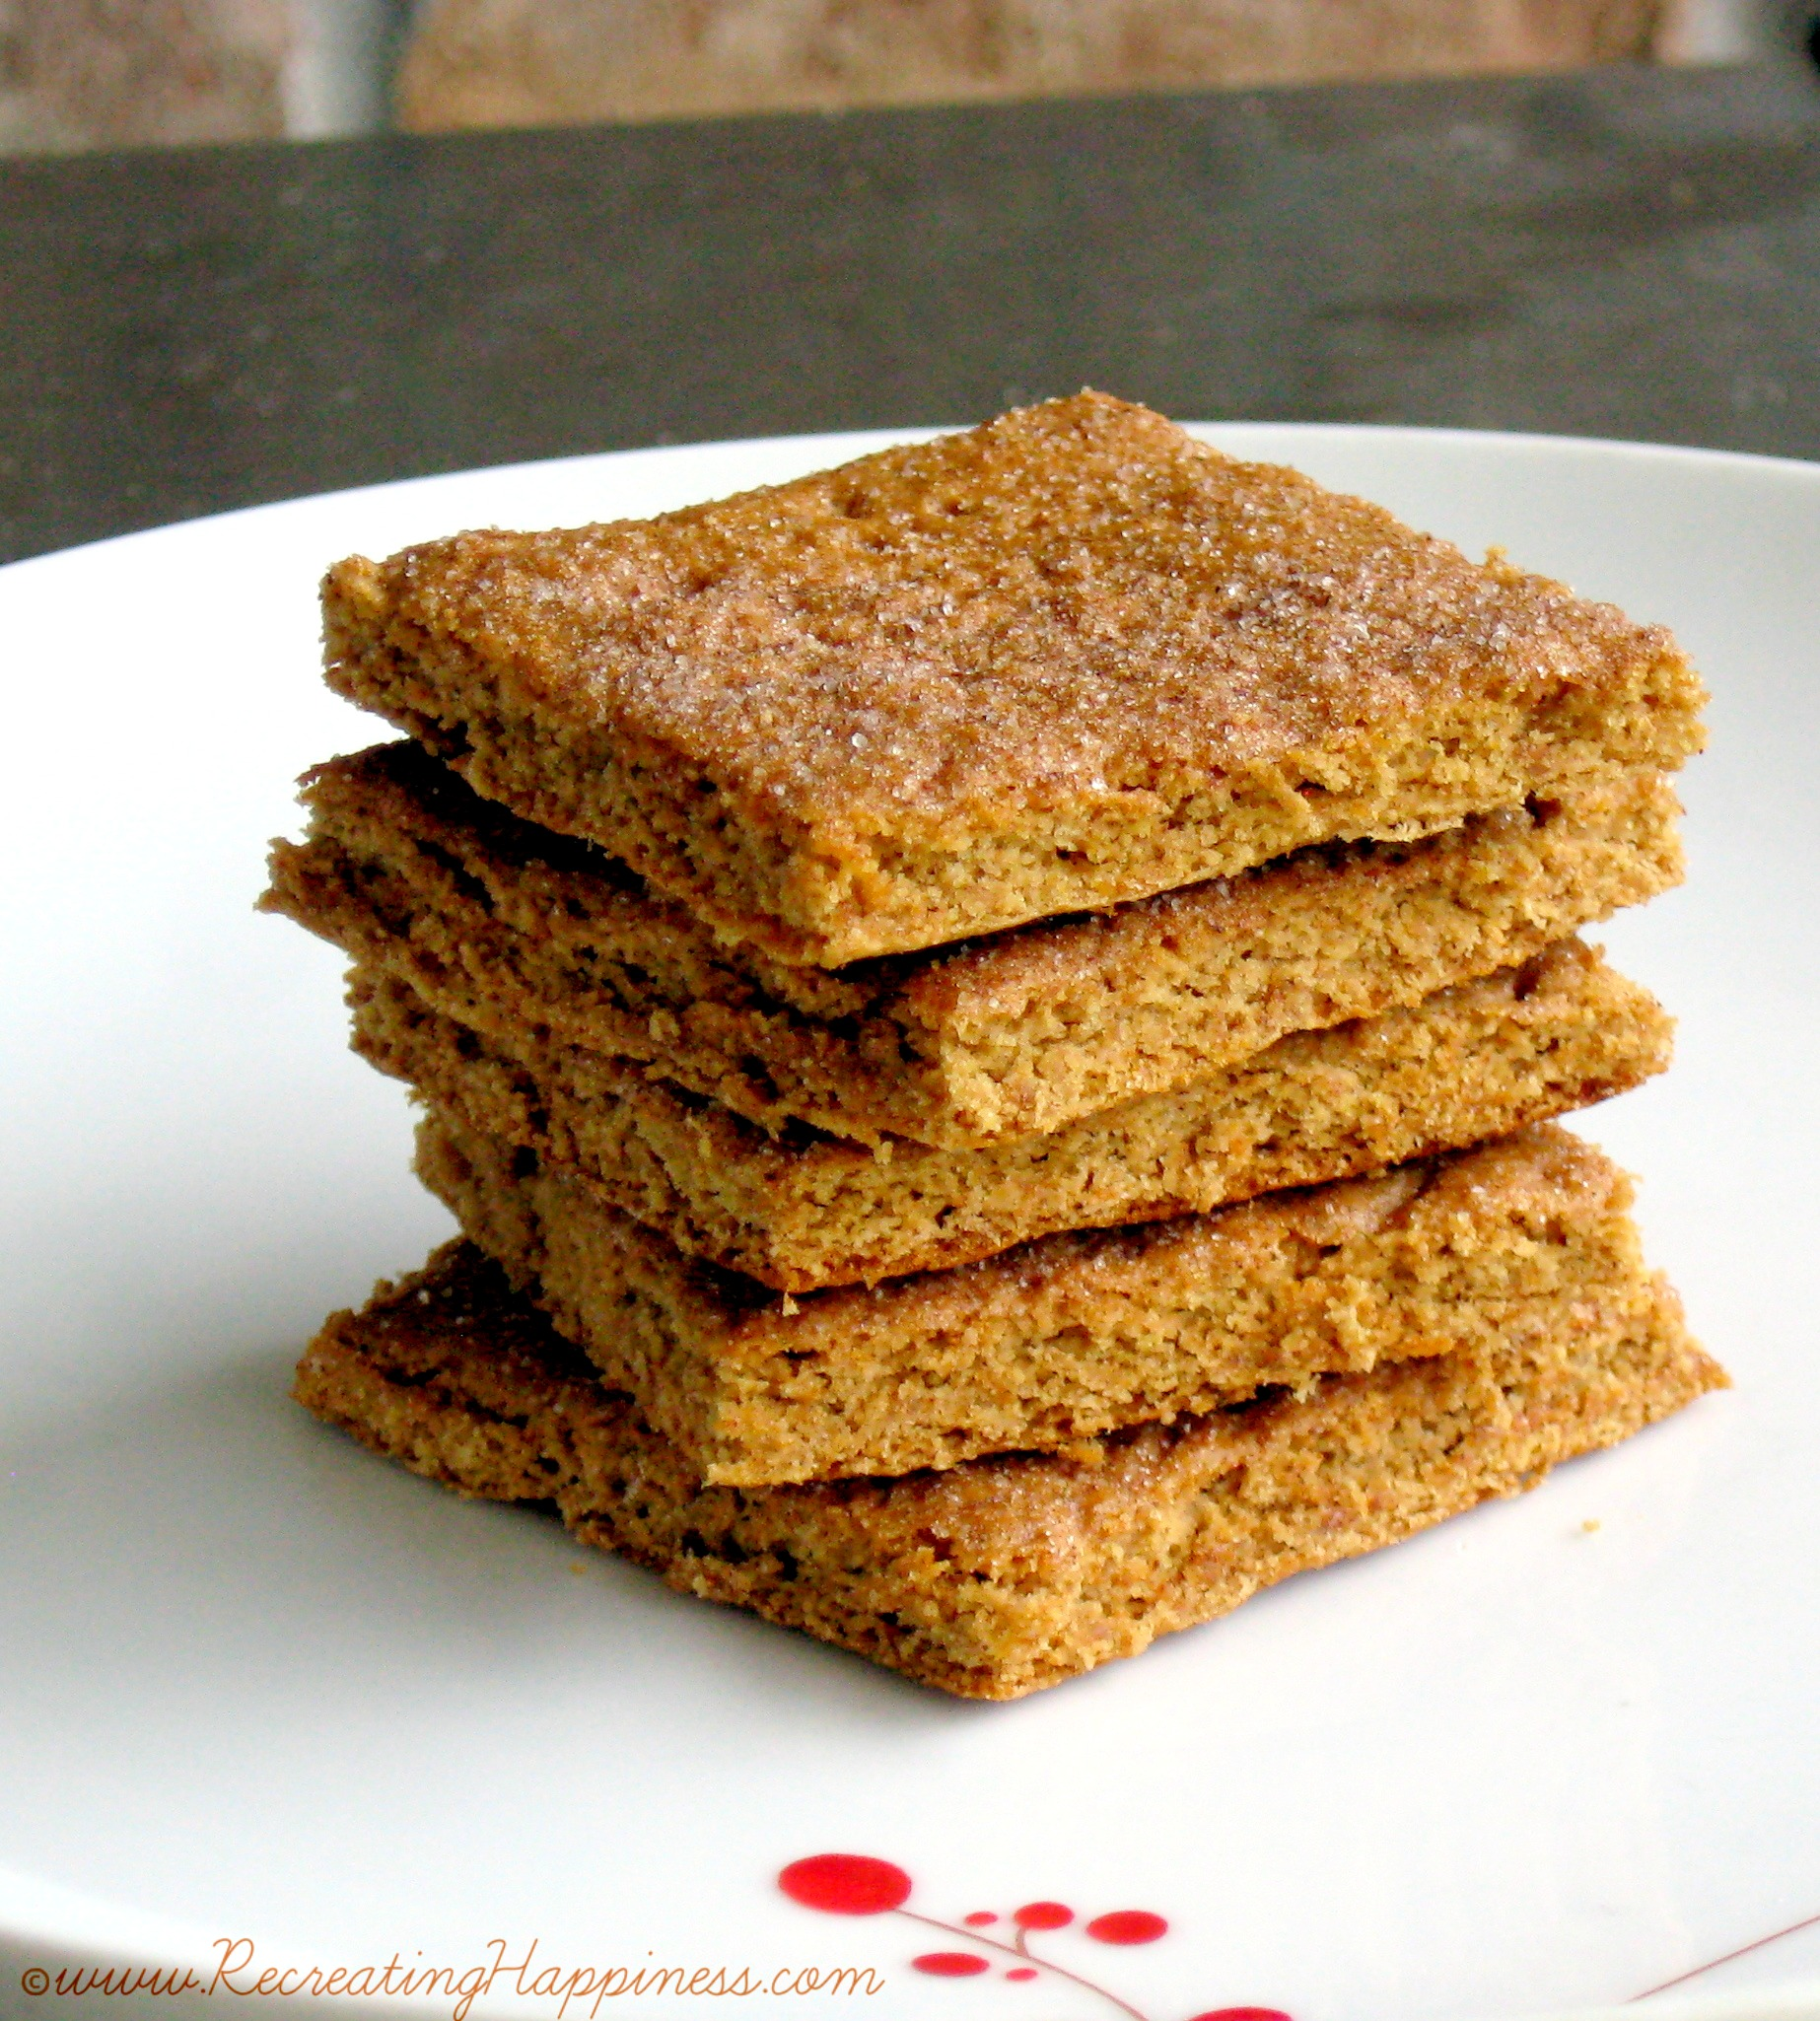 ... Revisited & Revised!* Gluten Free Graham Crackers Recipe: Healthy Too